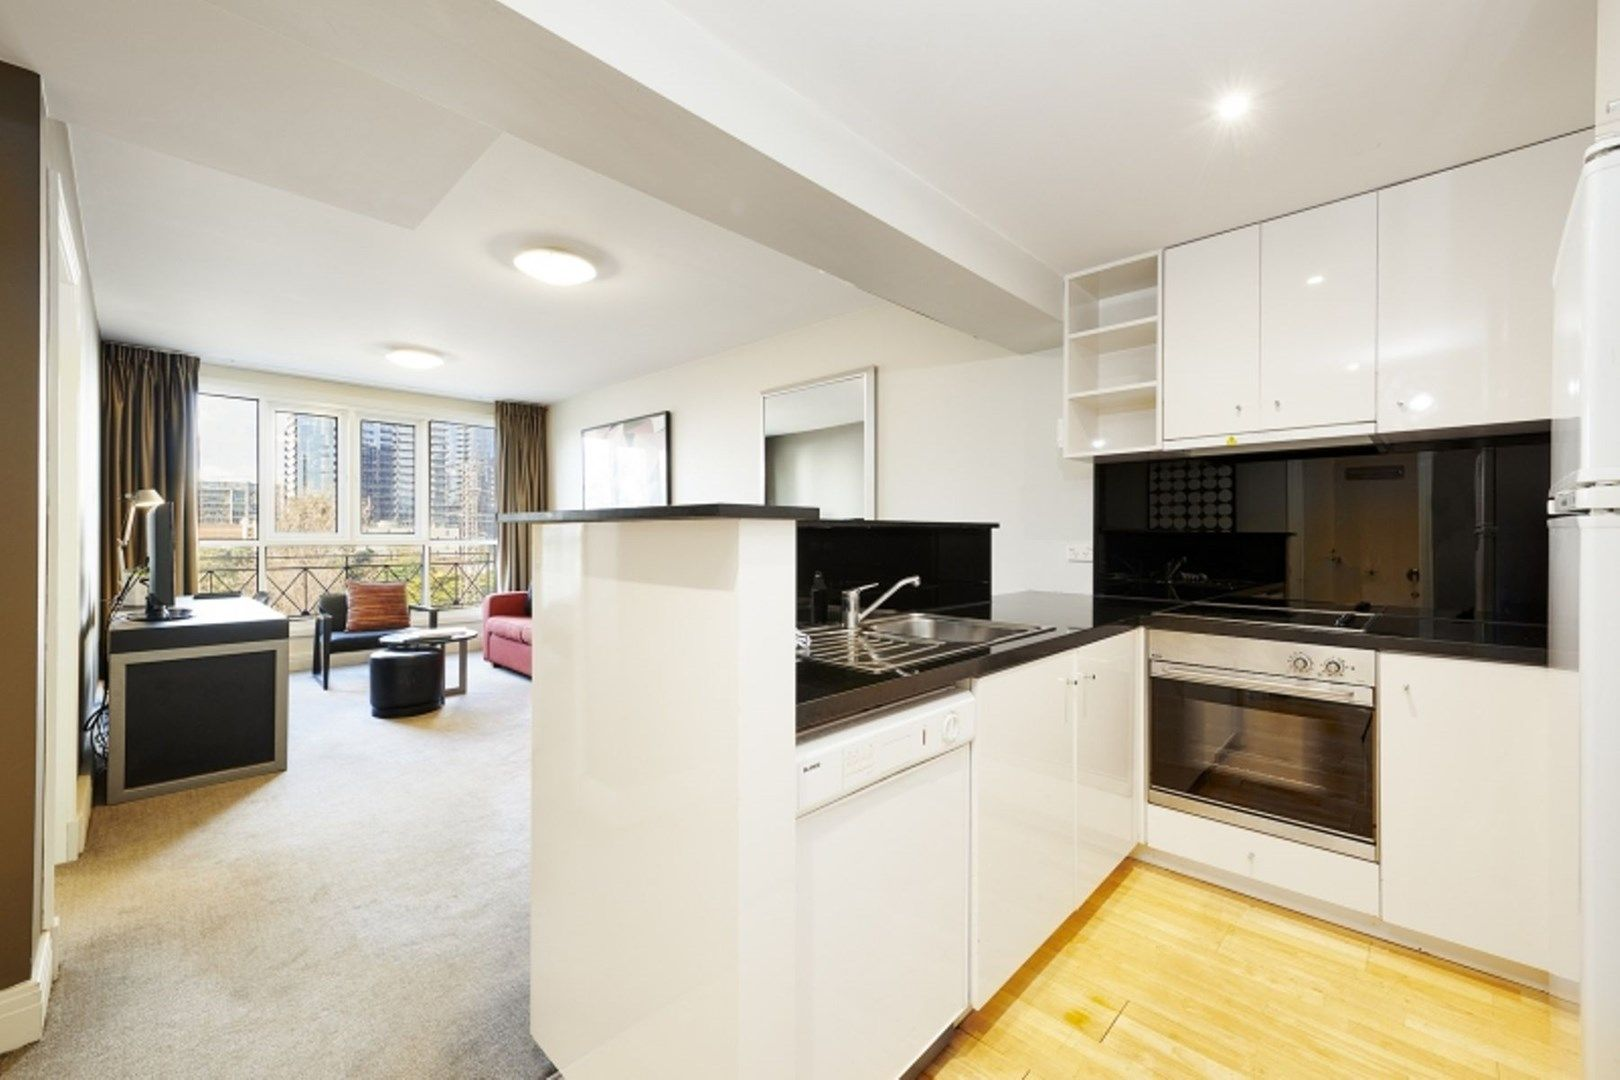 109/52 Darling Street, South Yarra VIC 3141, Image 2